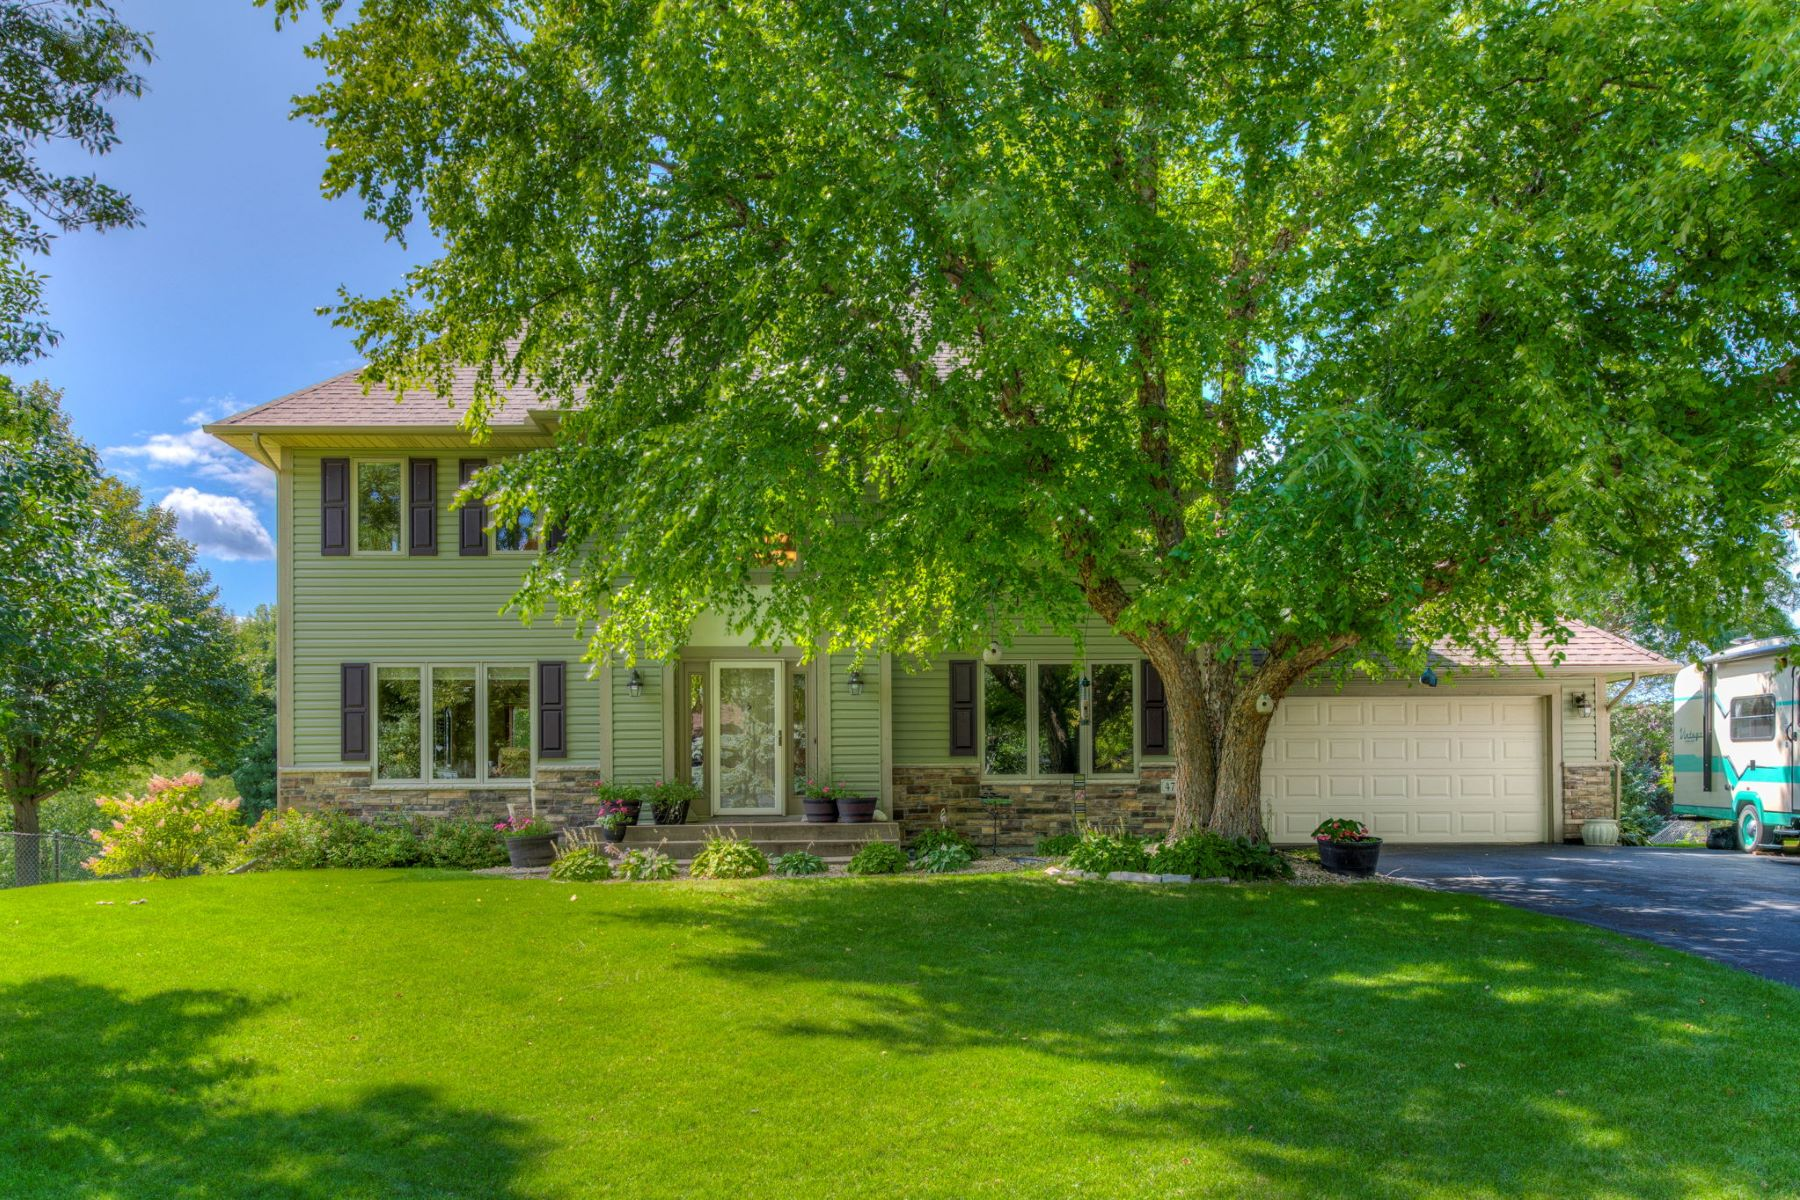 Single Family Homes for Sale at 4725 Kingsview Ln N Plymouth, Minnesota 55446 United States